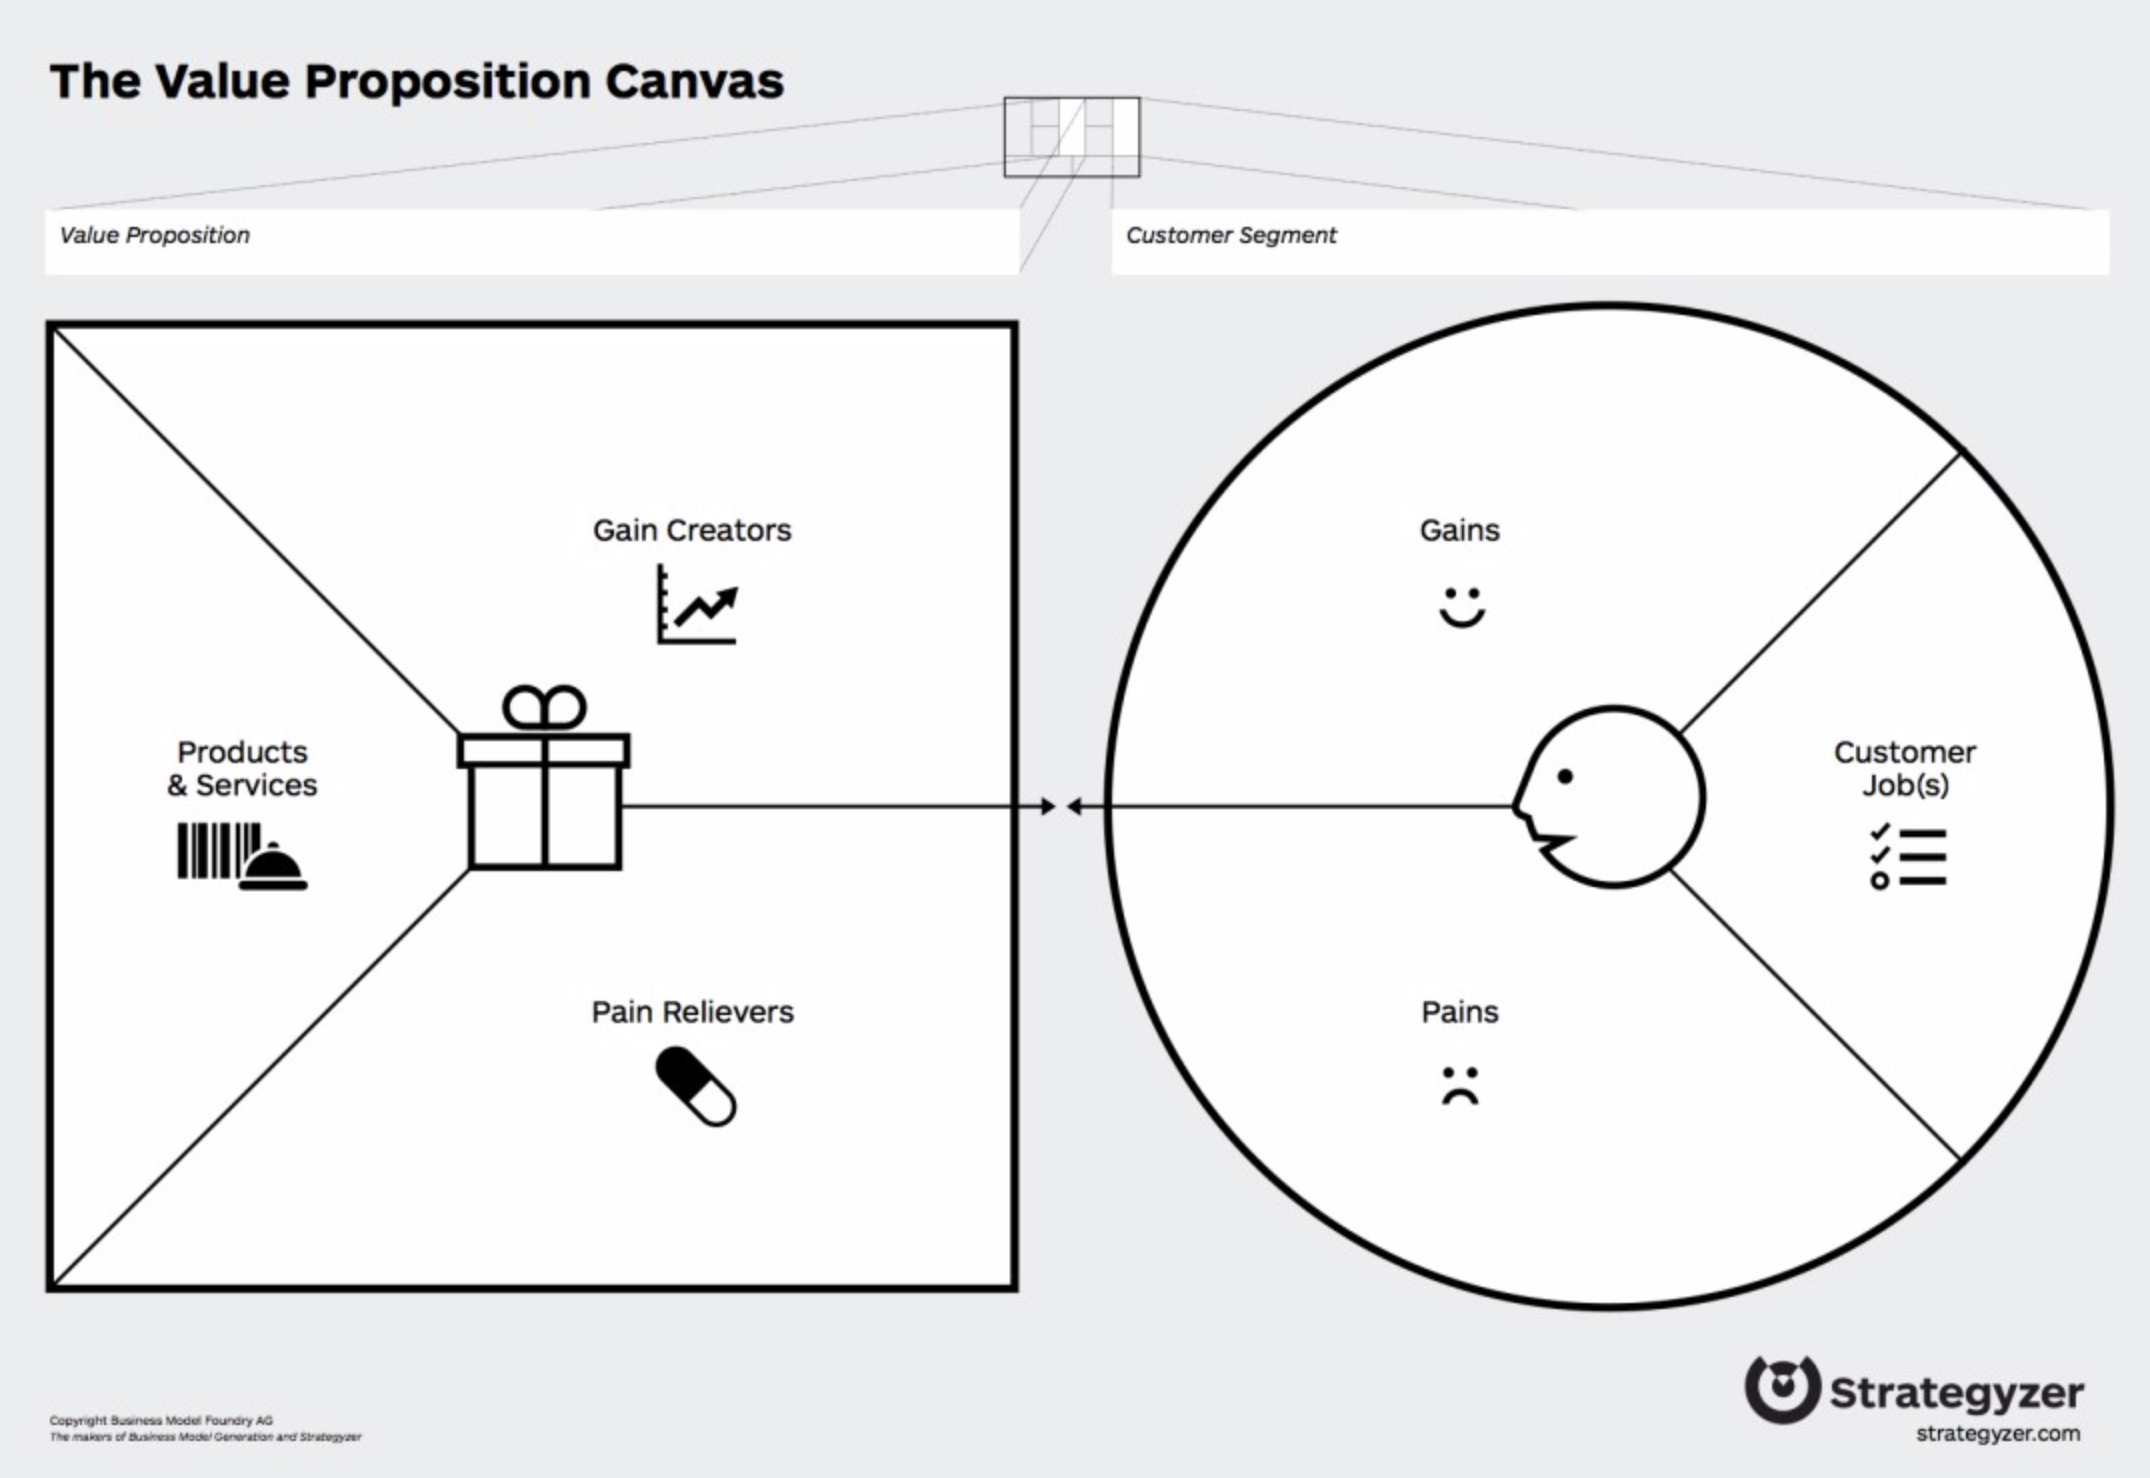 The Value Proposition Canvas from Strategyzer is a powerful tool for gaining a deeper insight into what makes people choose your organisation, product or service over others. Source: Strategyzer.